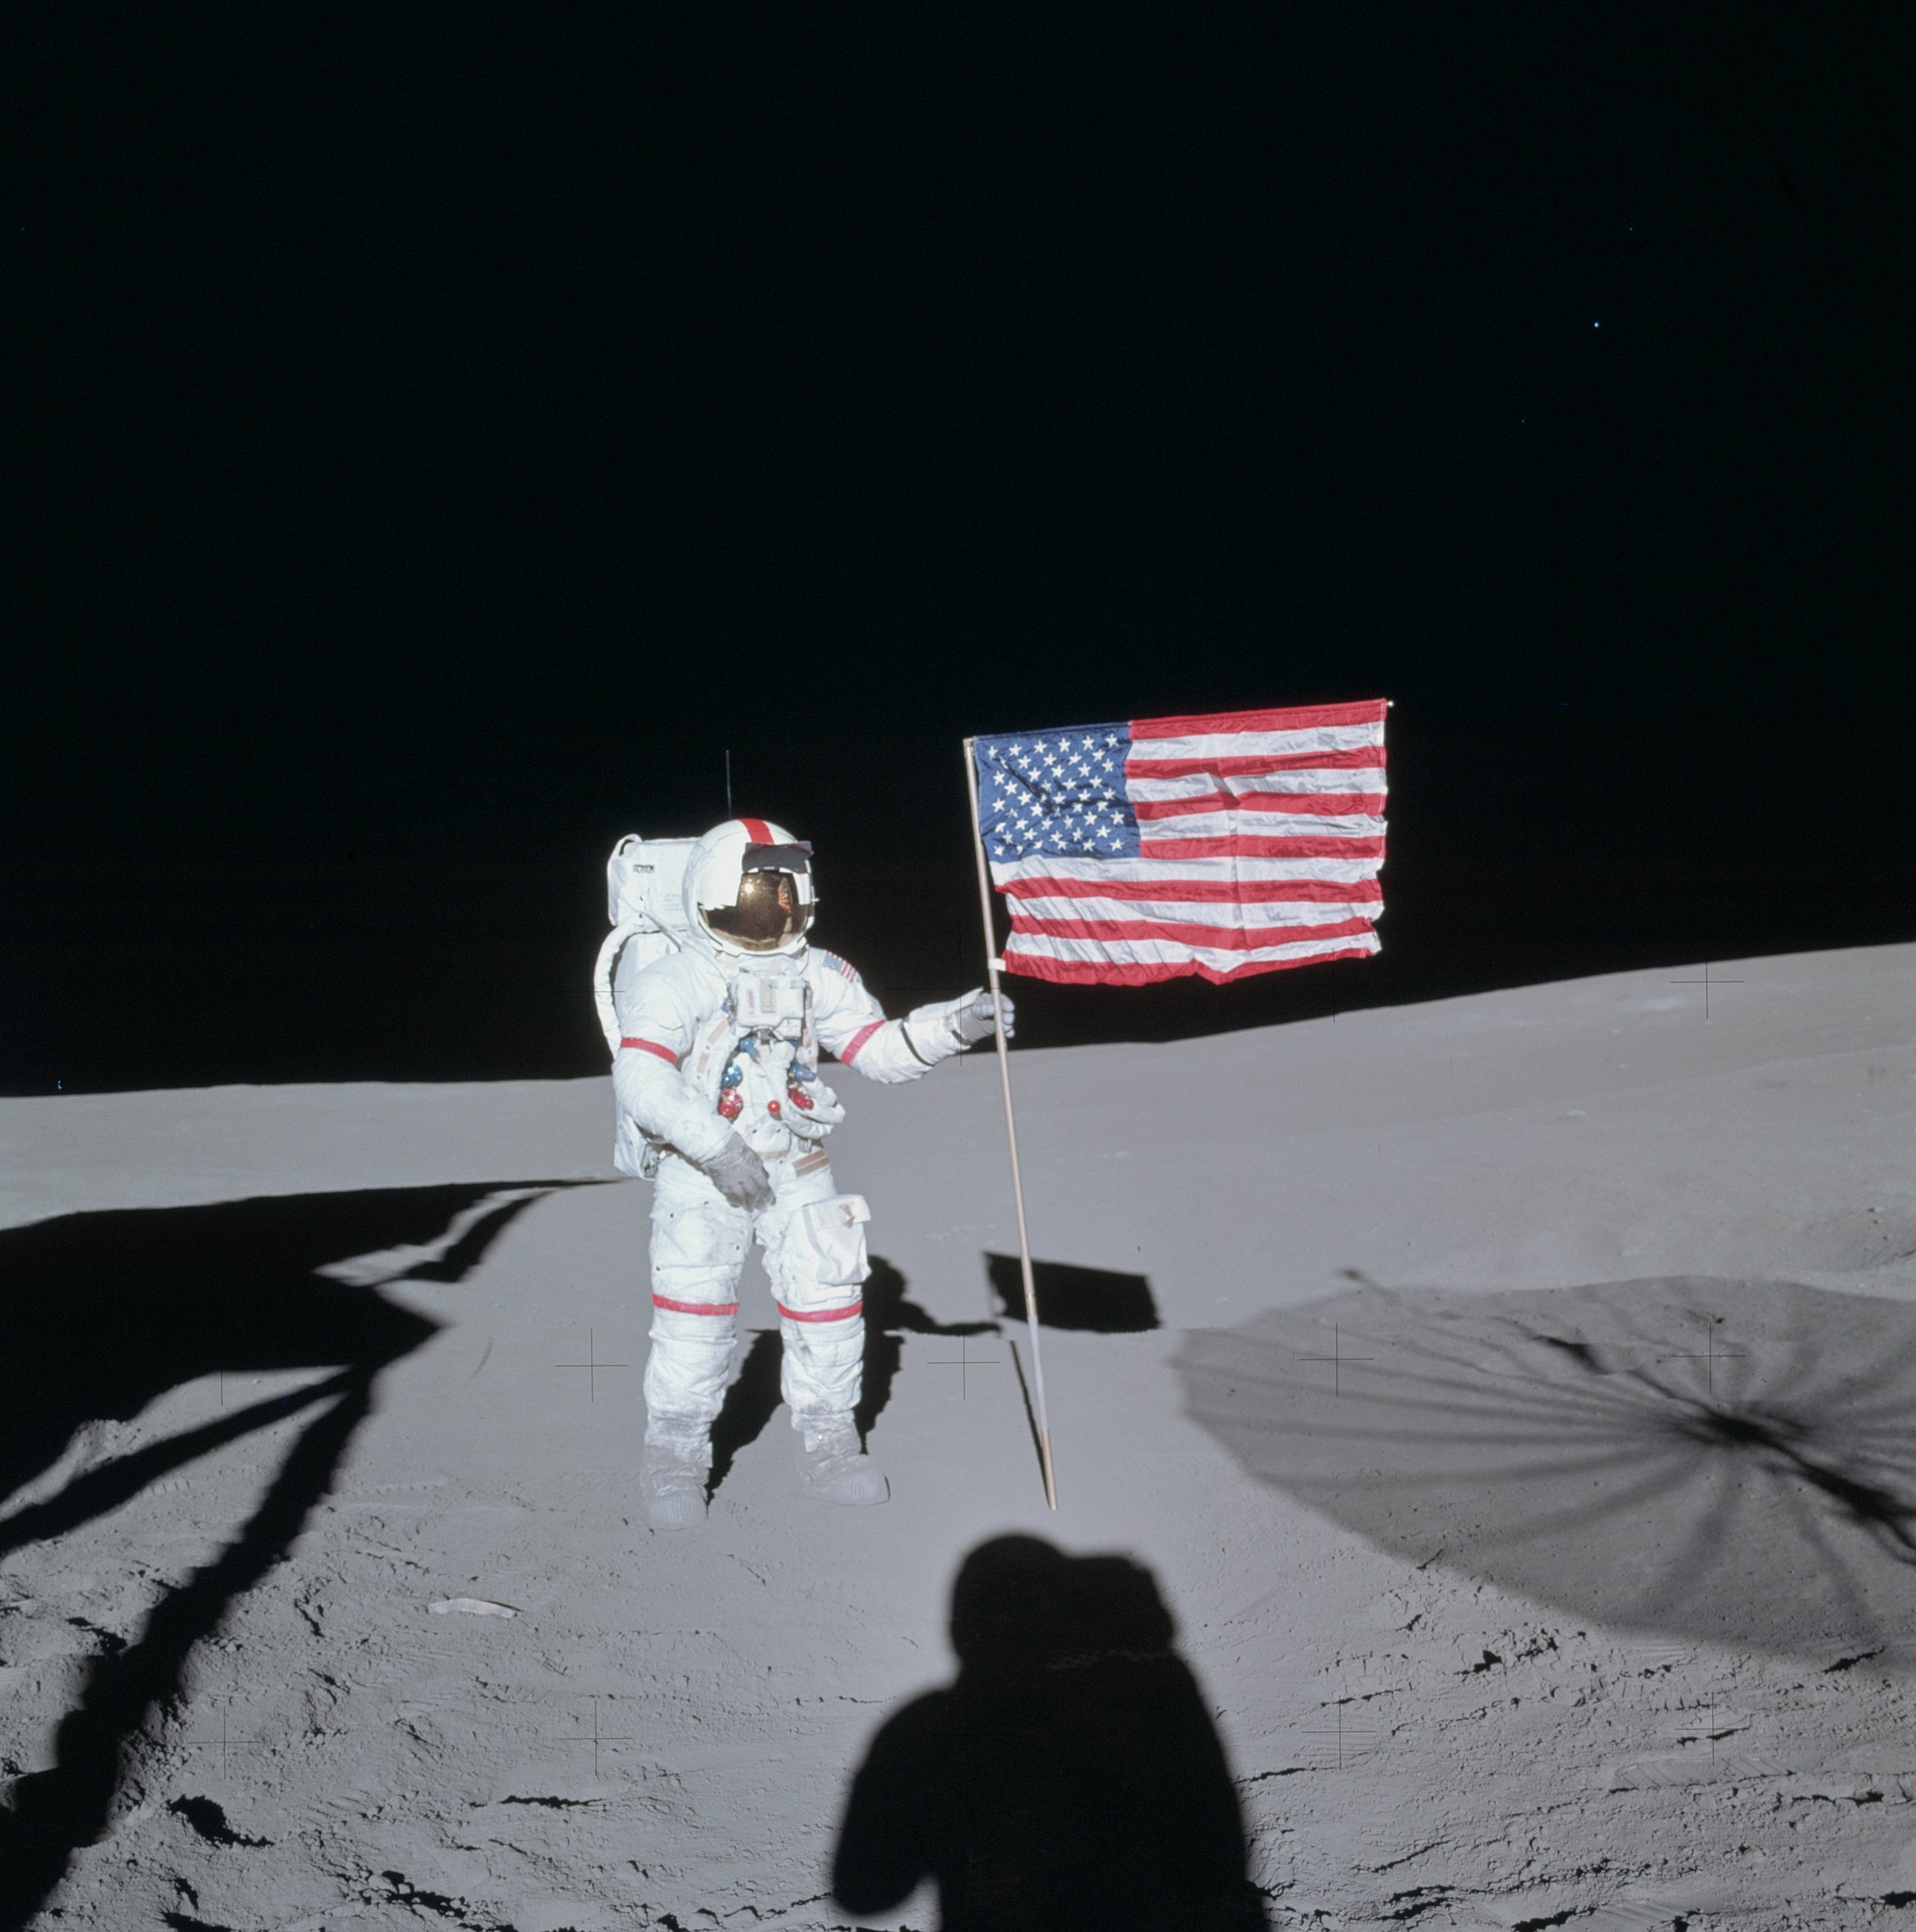 Astronaut from Apollo 14, on the Moon with U.S. flag - NASA photo via Wikimedia